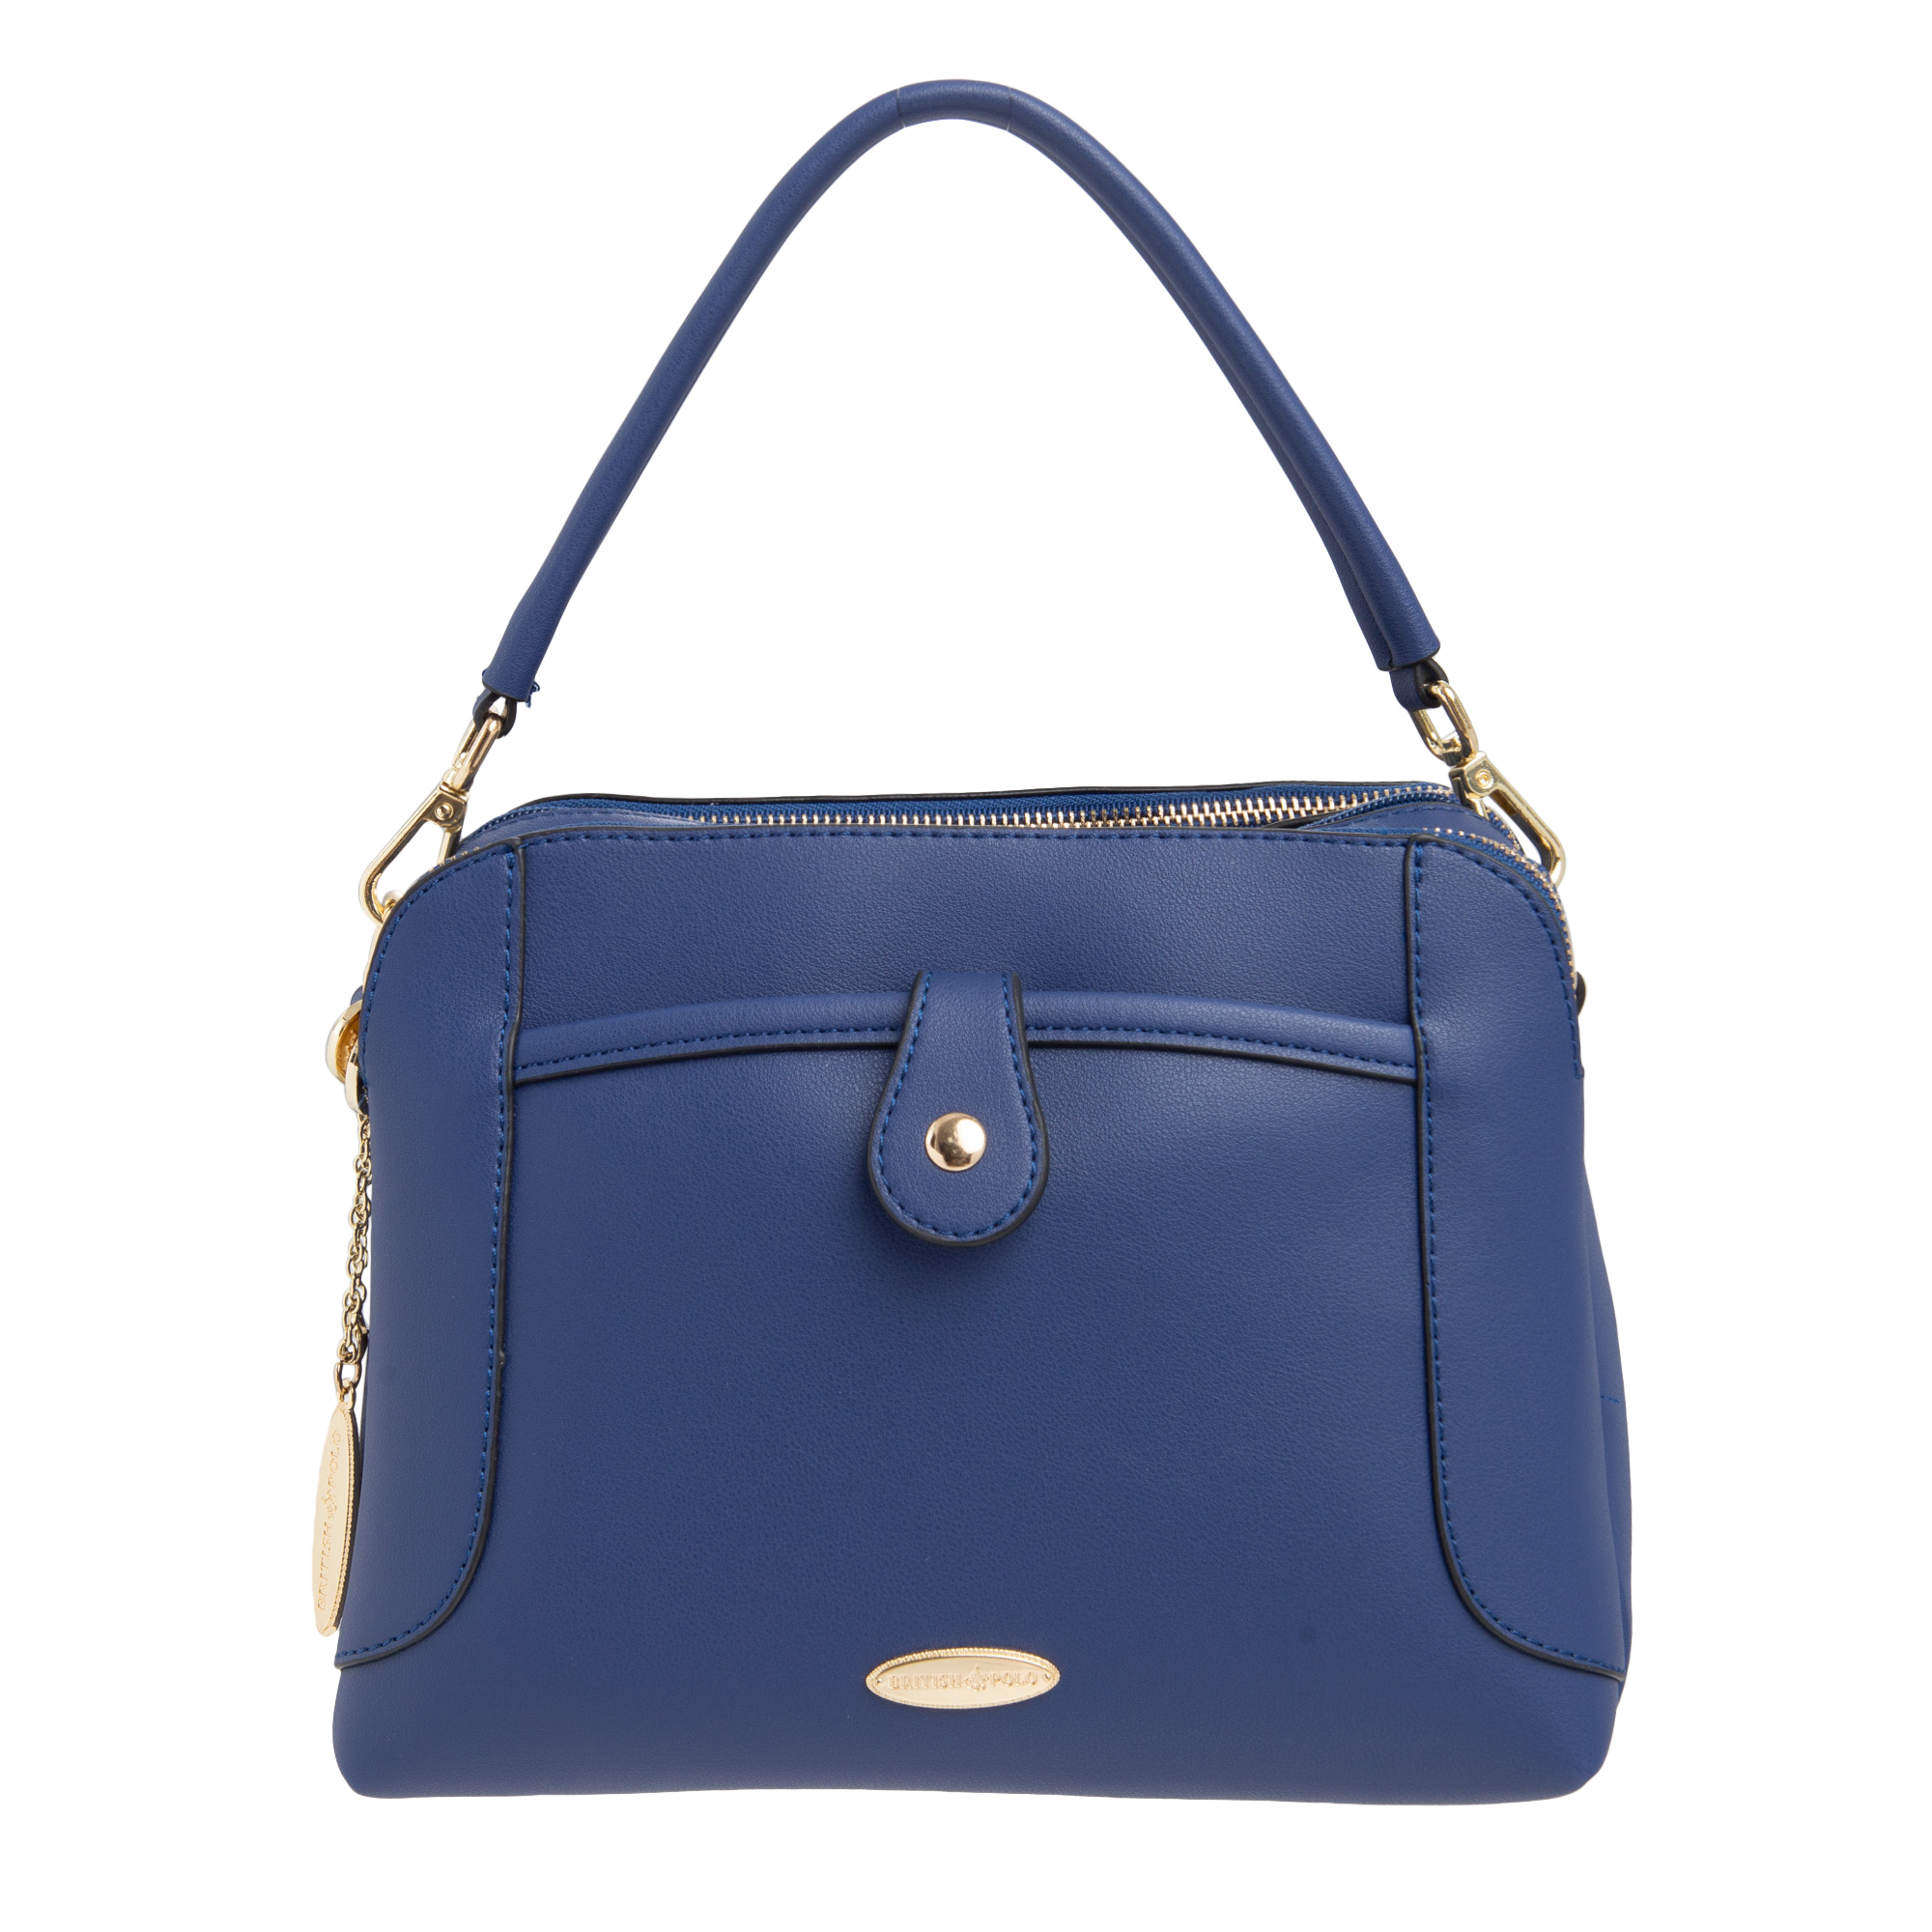 Clickasia New Arrival Mamypoko Tape Small Packet British Polo Pu Leather Cross Body Bag